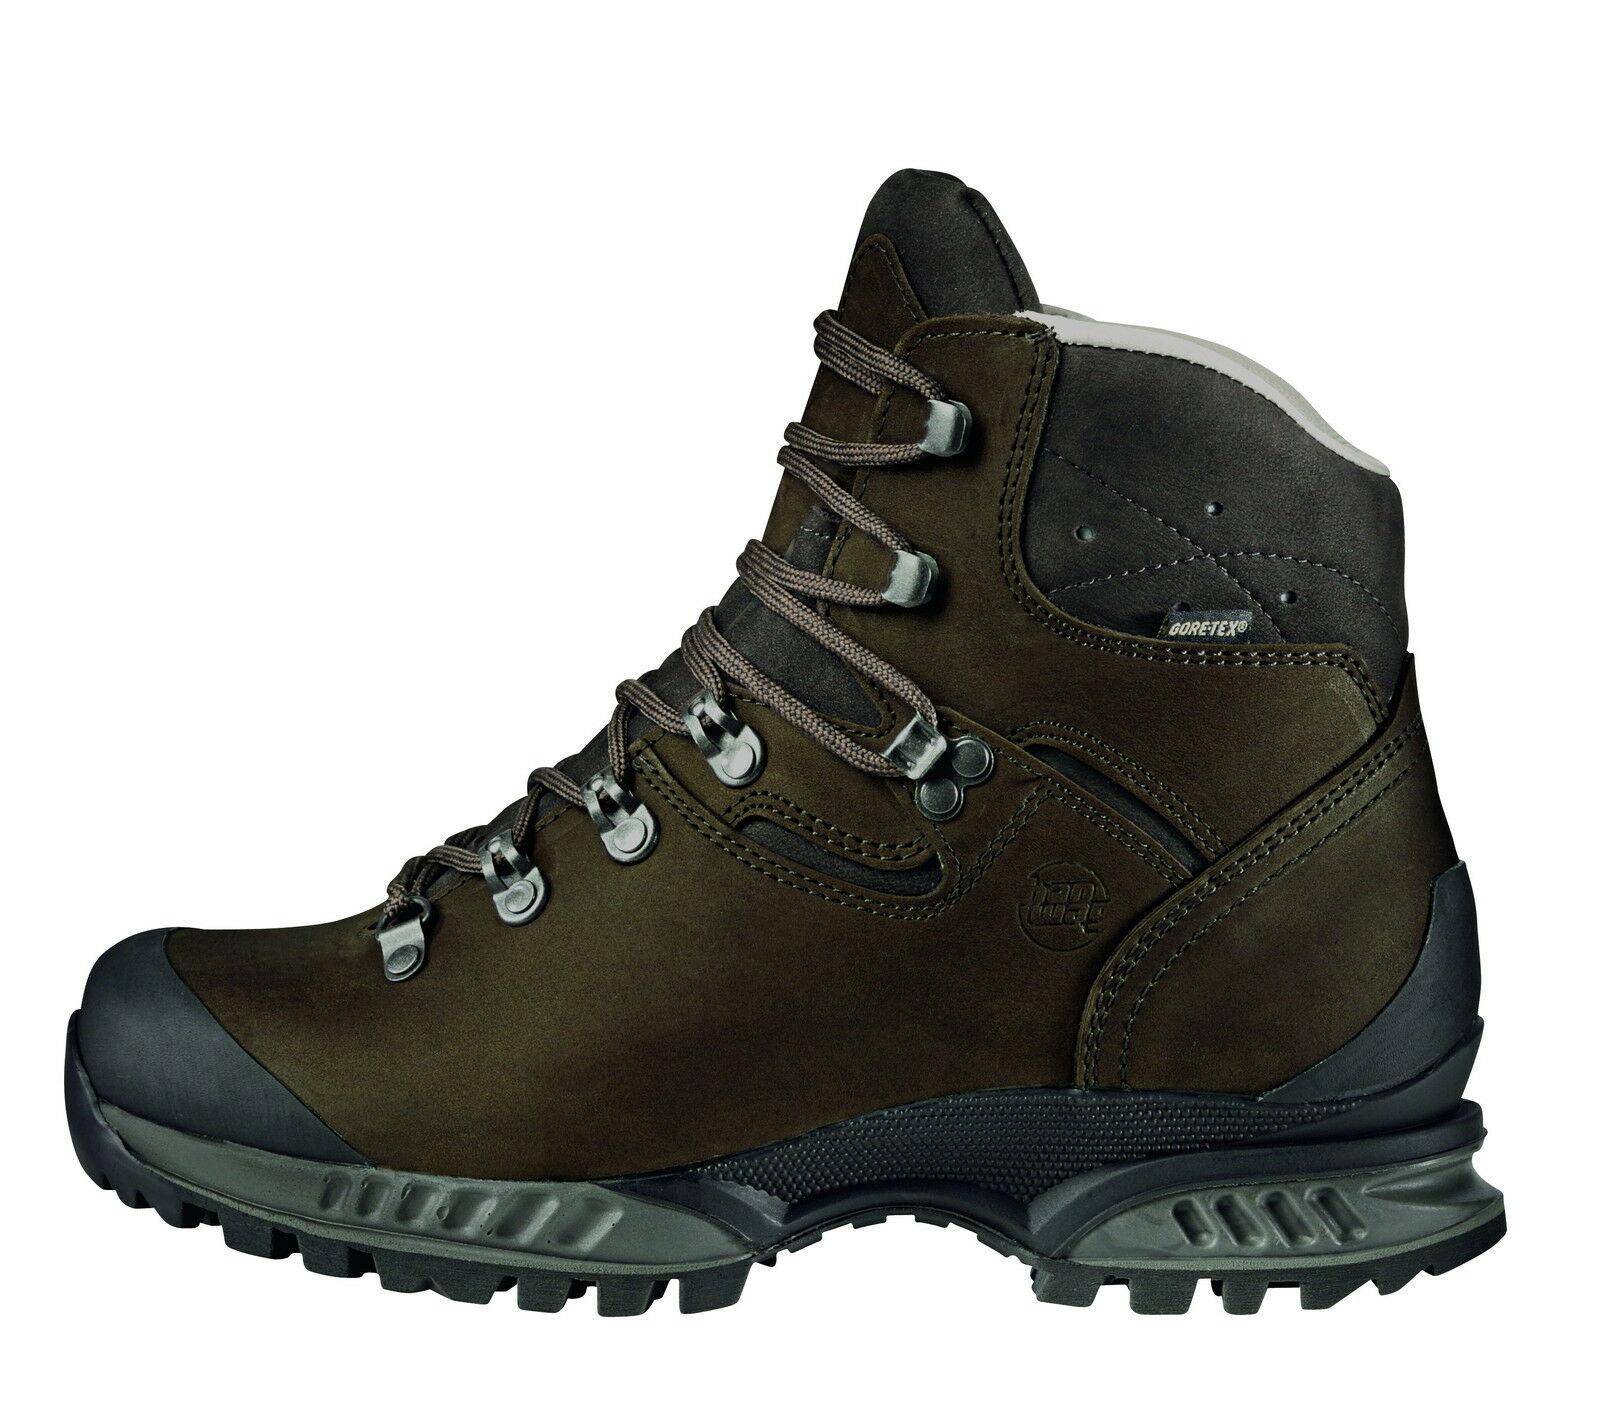 Hanwag Mountain shoes  Tatra Men Leather Size 7,5 - 41,5 Earth